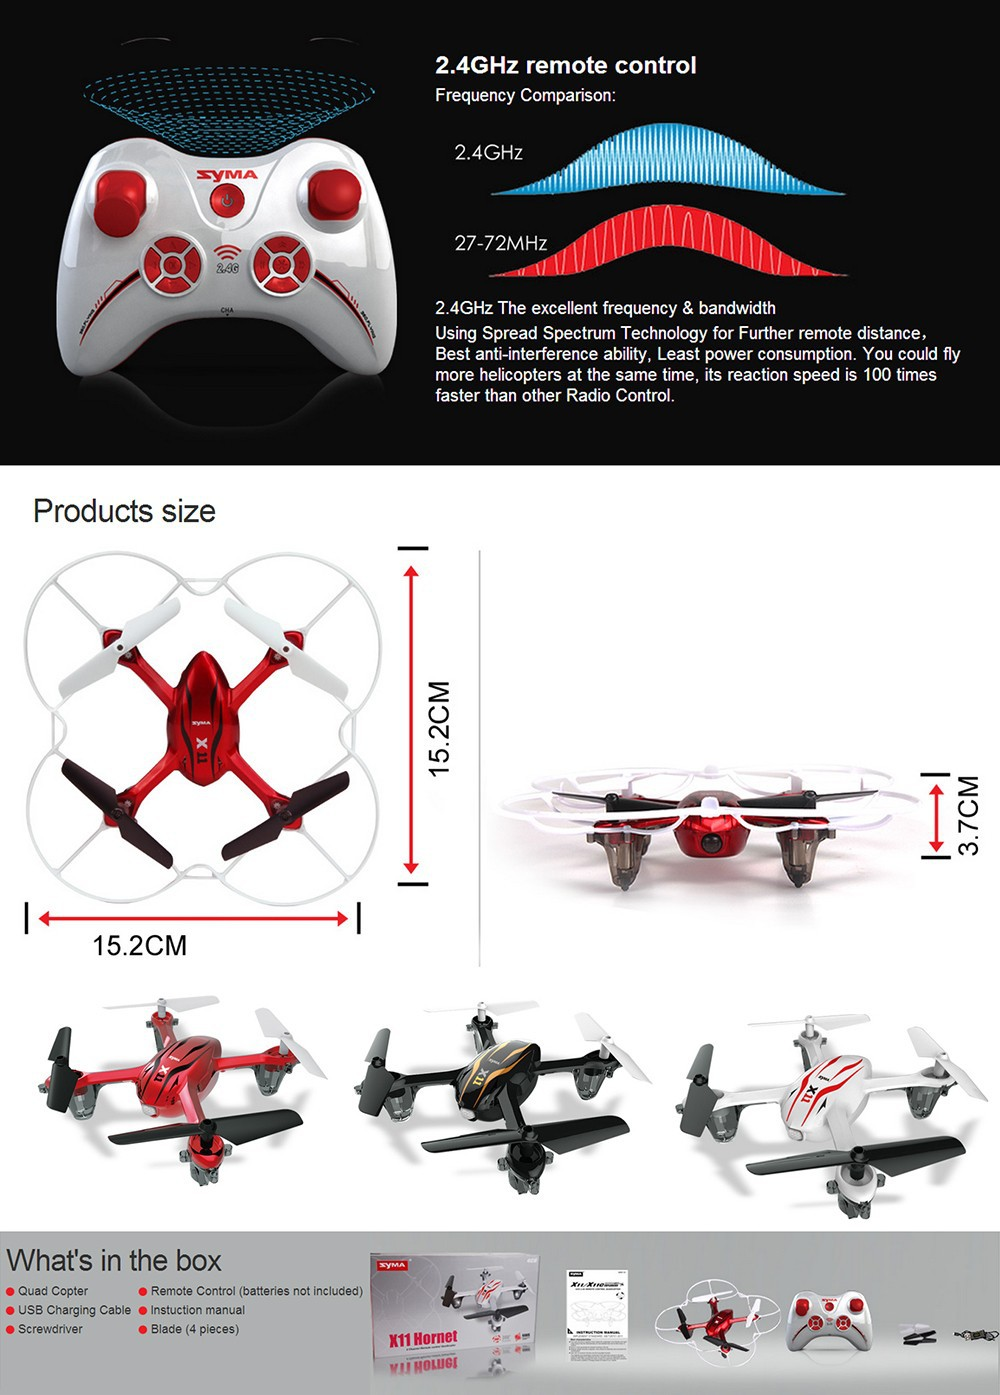 SYMA X11 Mini Drone Quadcopter 360 Eversion Headless Mode 2.4G 4CH 6-Axis GYRO Flashing Lights RC Helicopter Quadrocopter Drones